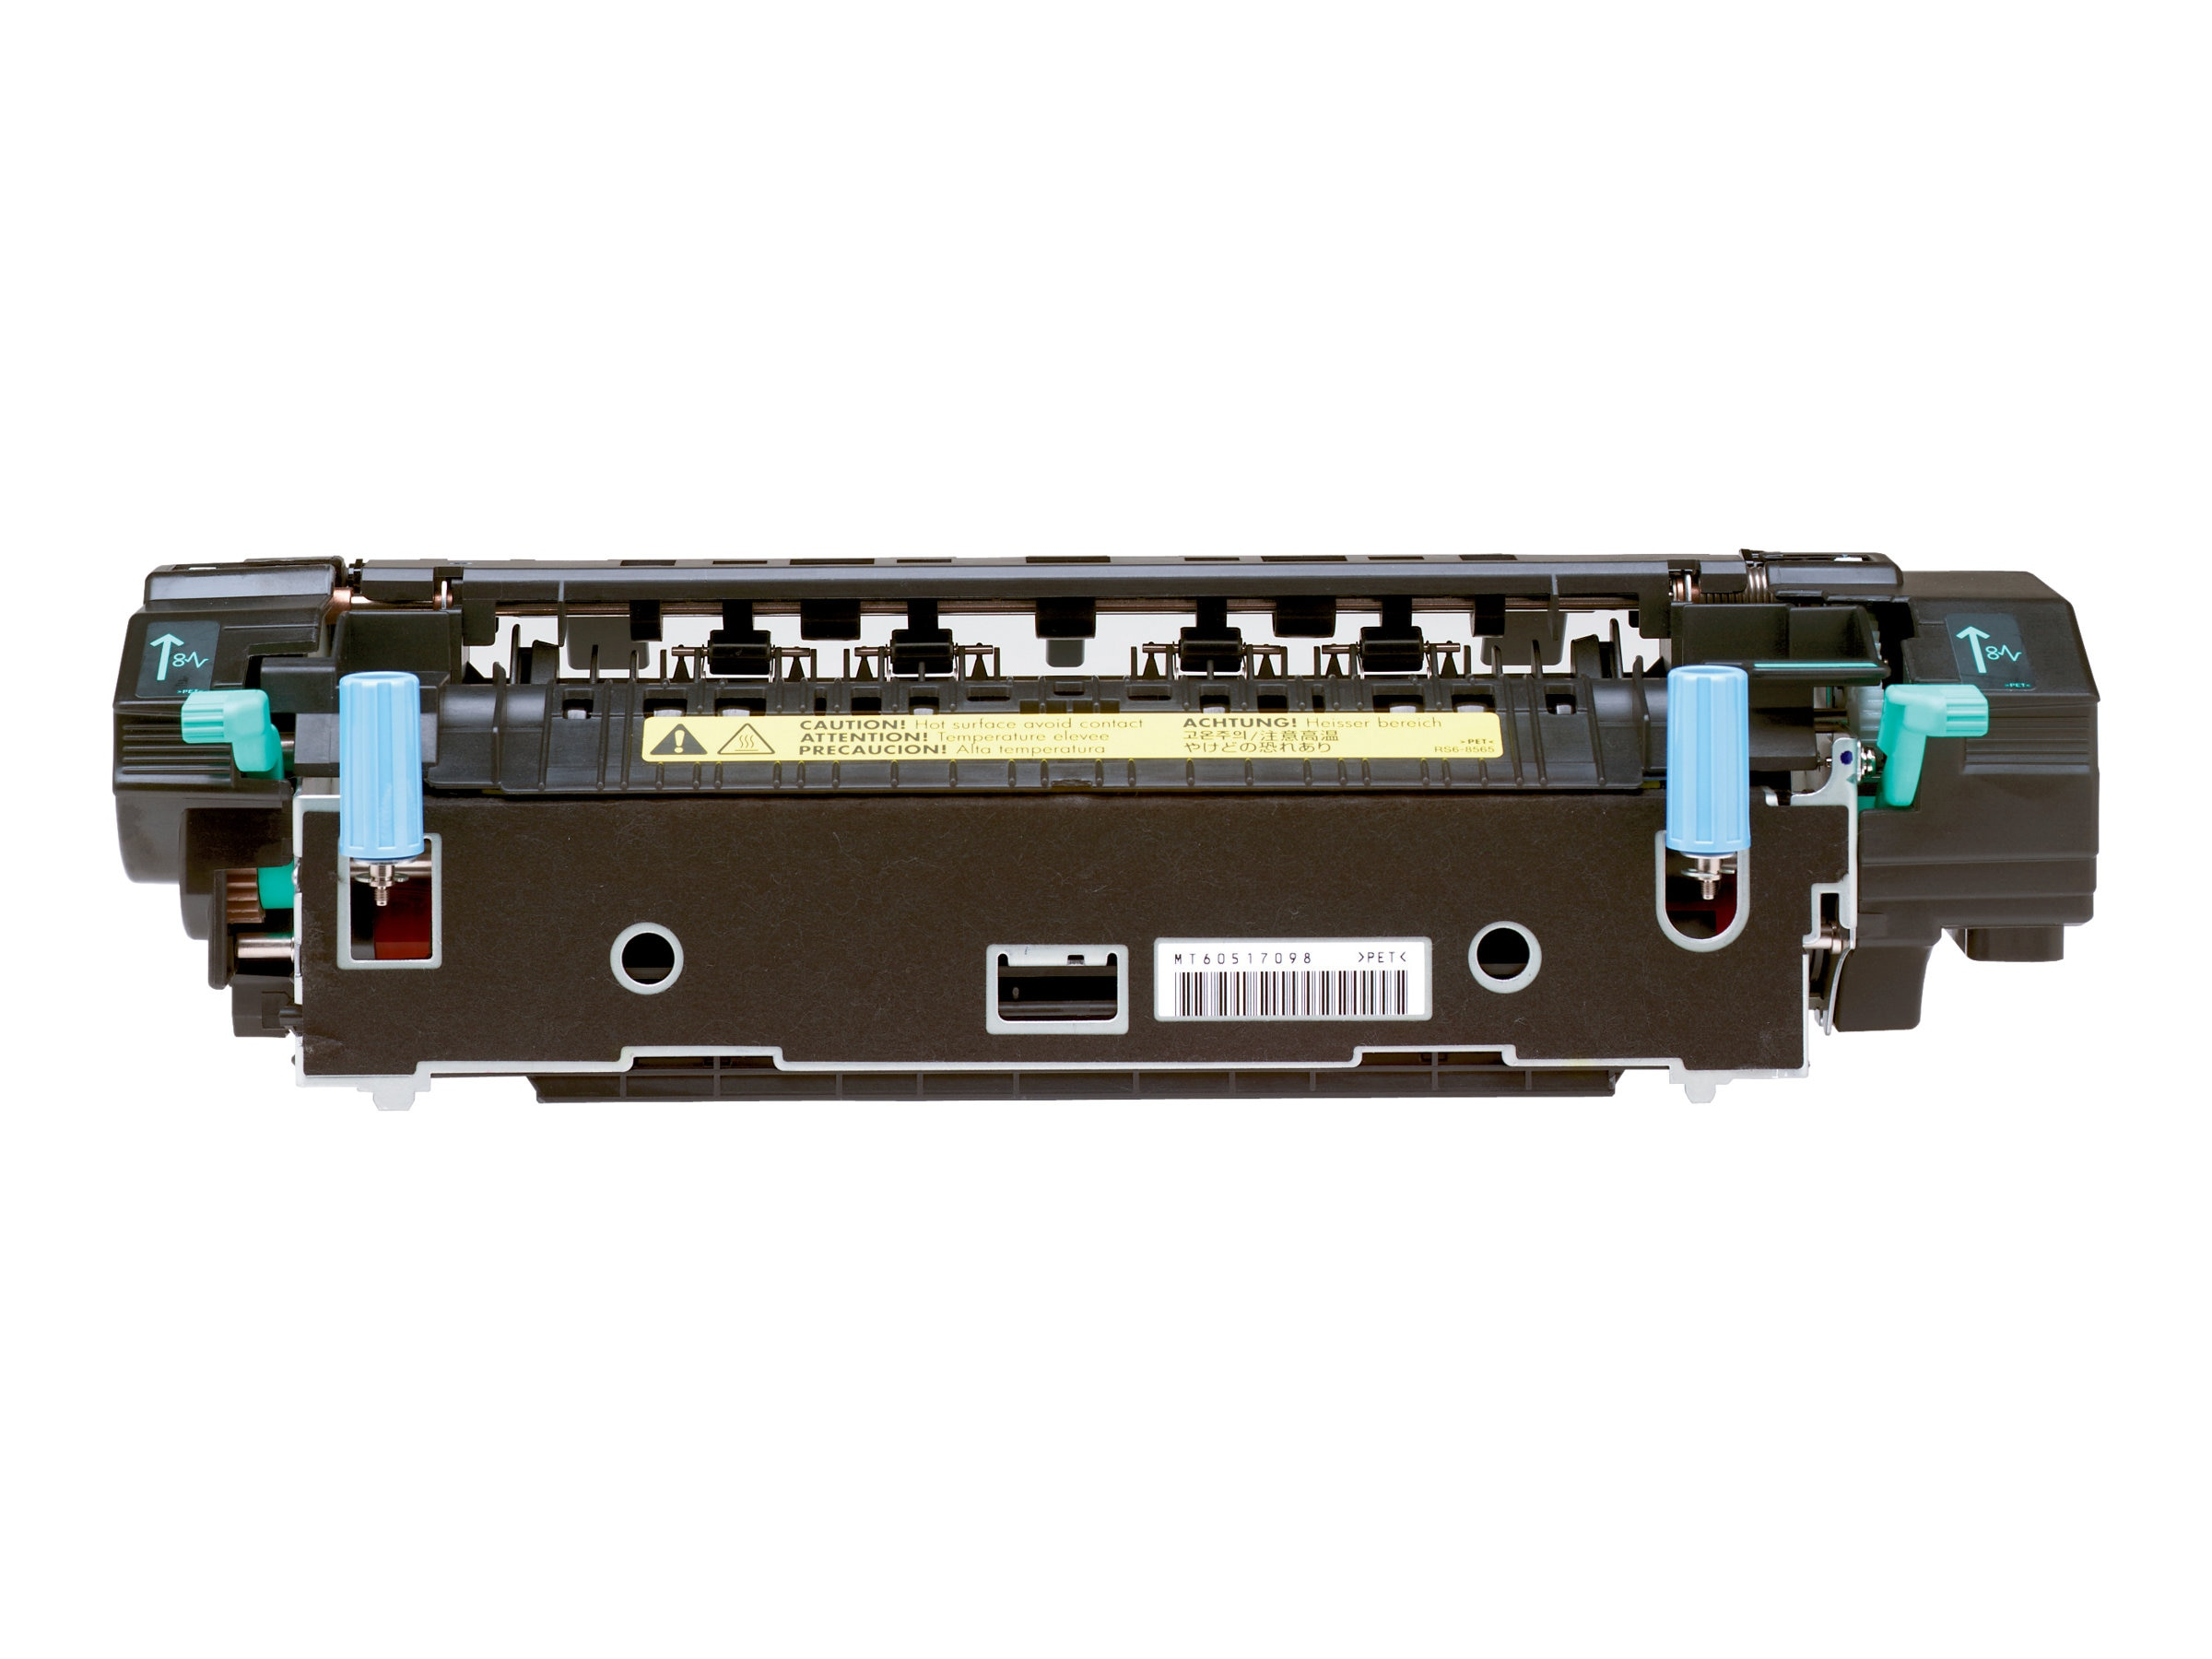 HP 220V Image Fuser Kit for HP Color LaserJet 4650 Series Printers, Q3677A, 5478951, Printer Accessories